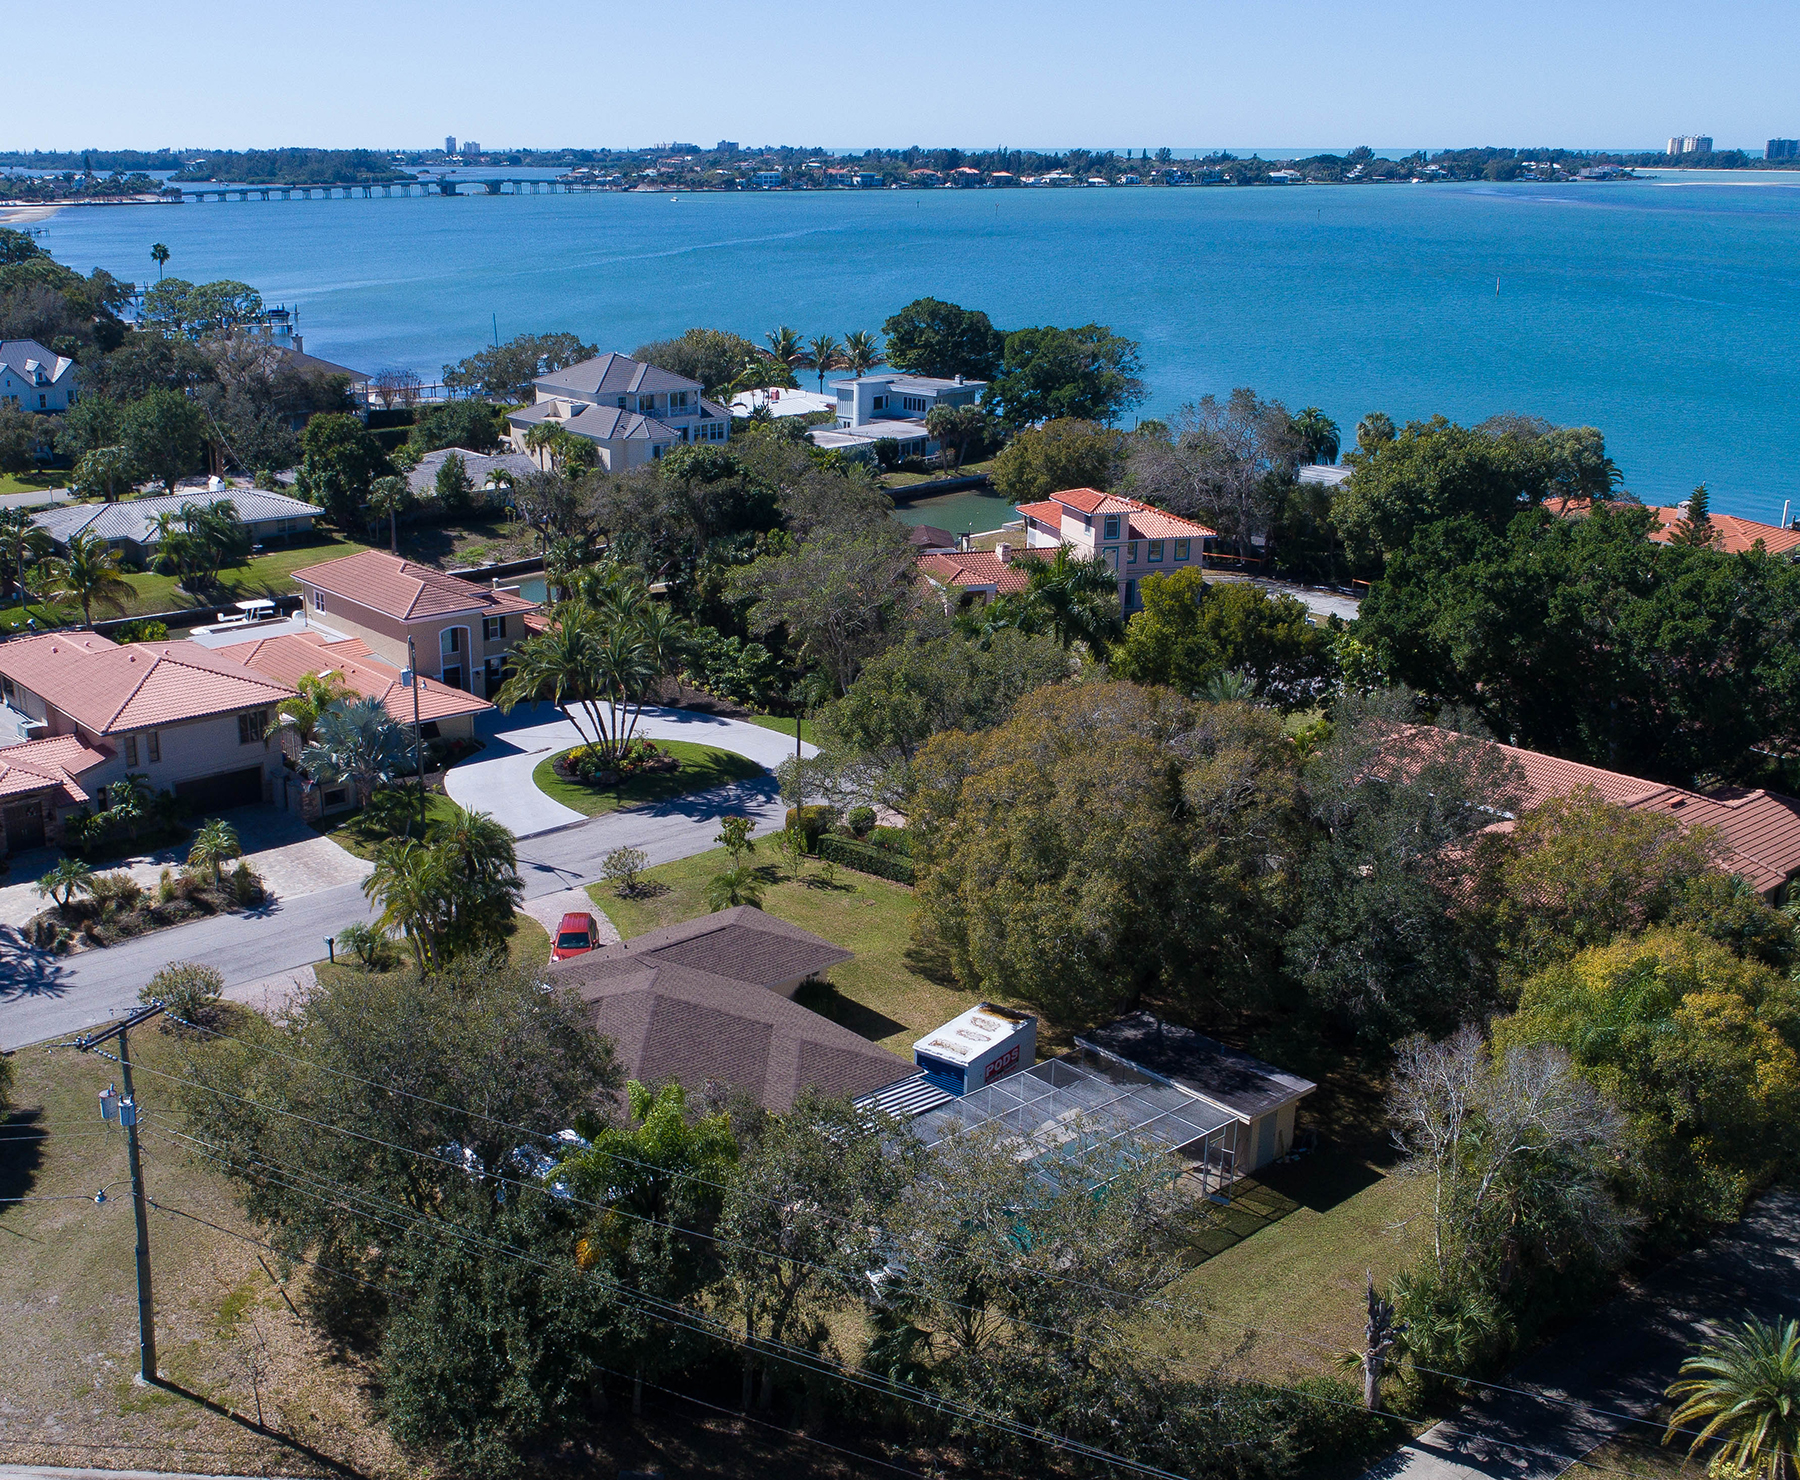 Single Family Home for Sale at PARADISE SHORES 1555 Sandpiper Ln Sarasota, Florida, 34239 United States